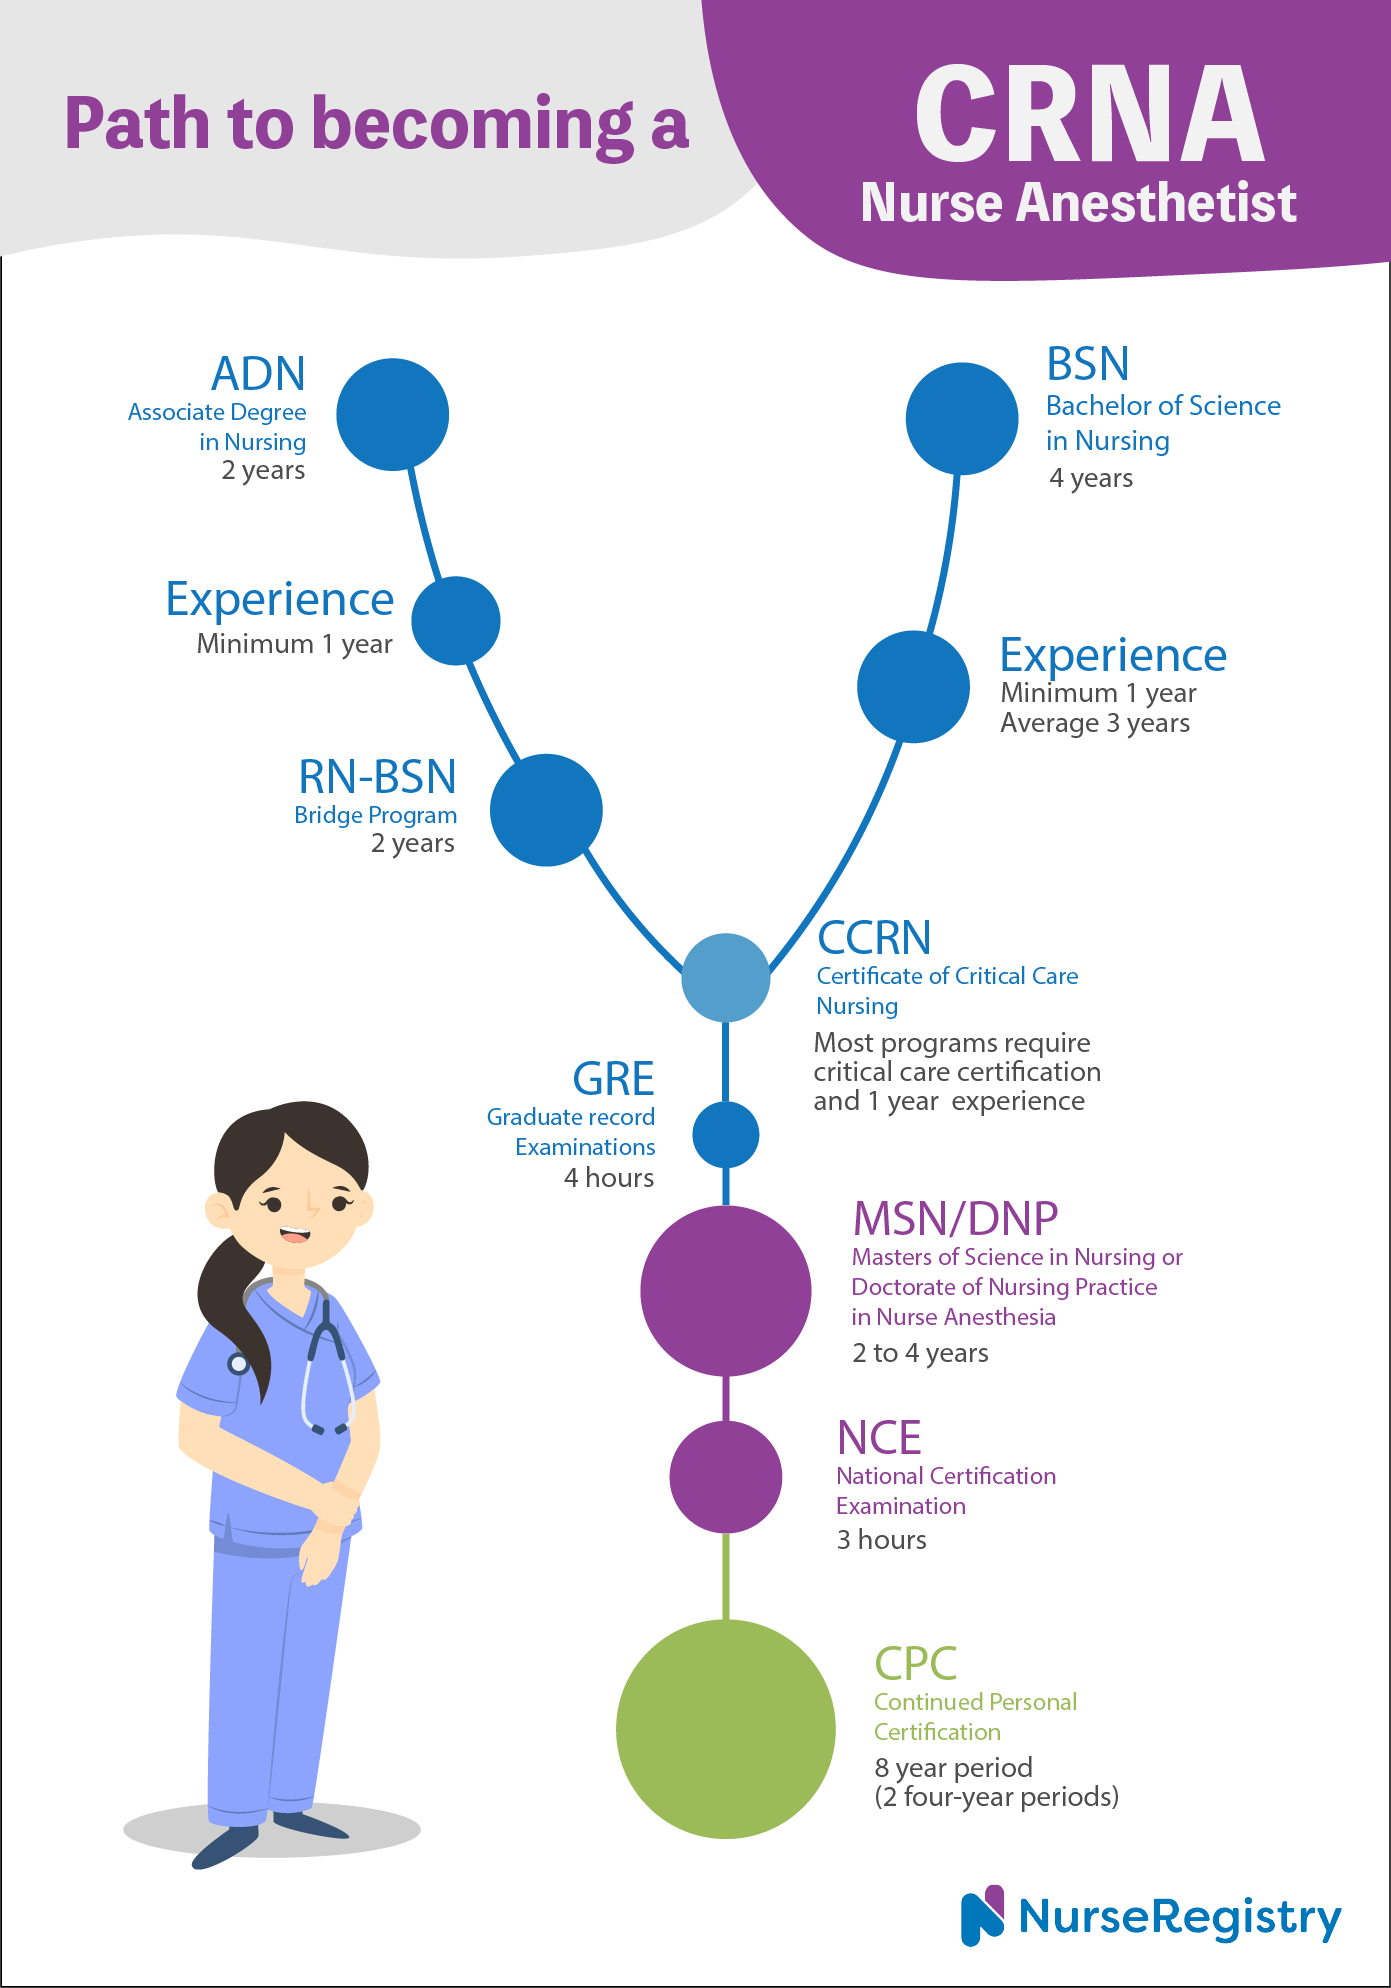 Path to becoming a CRNA nurse anesthetist_infographic